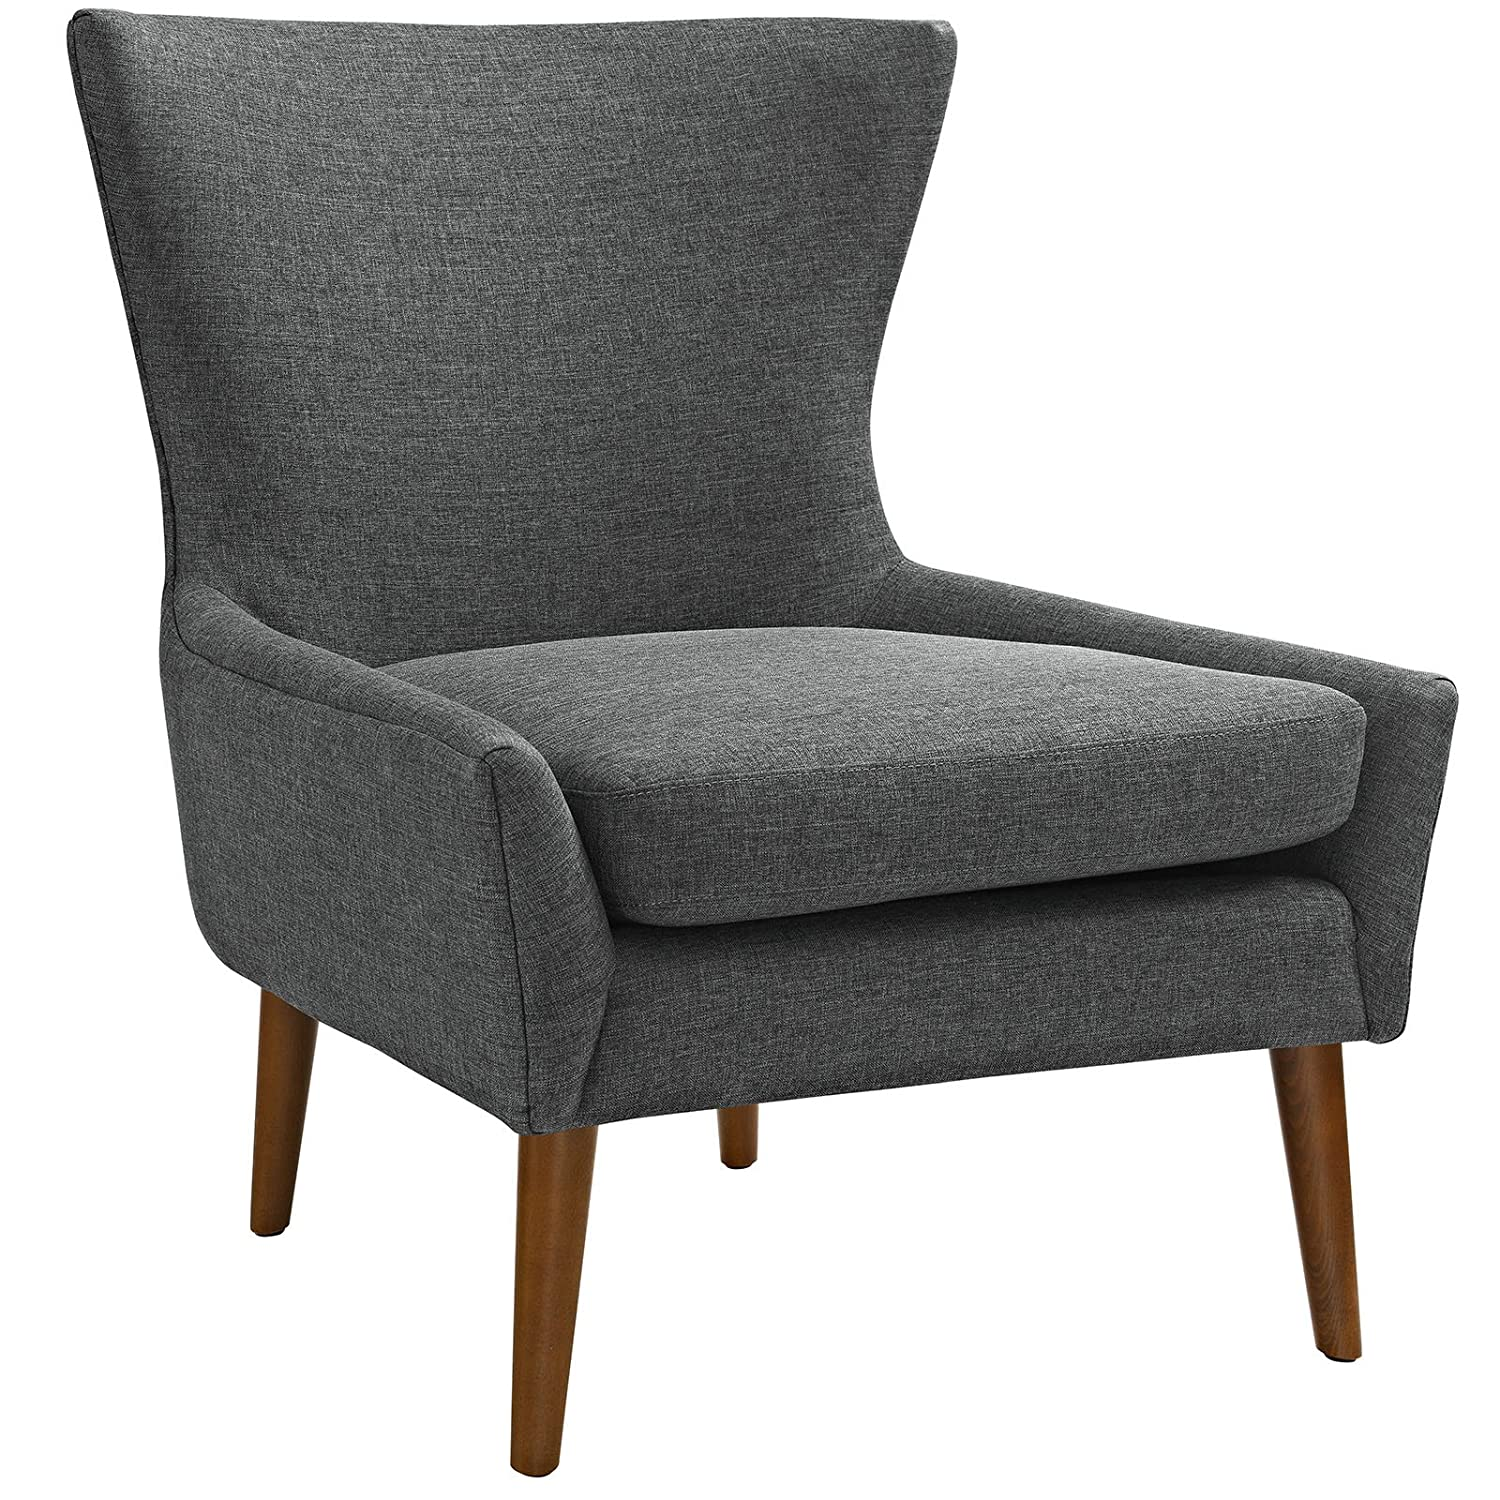 Modway Keen Upholstered Fabric Armchair in Gray